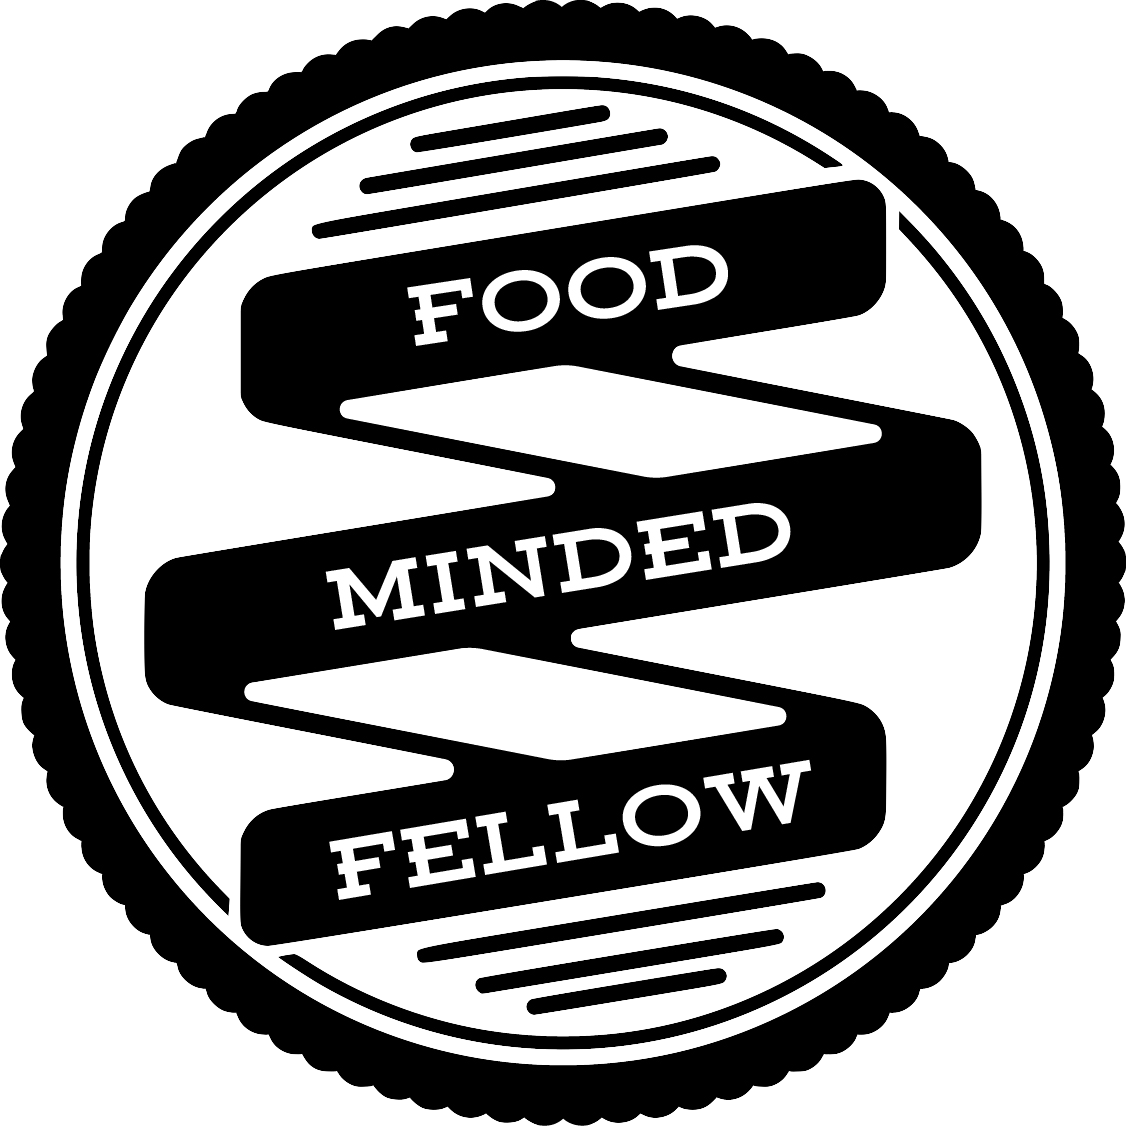 Food Minded Fellow